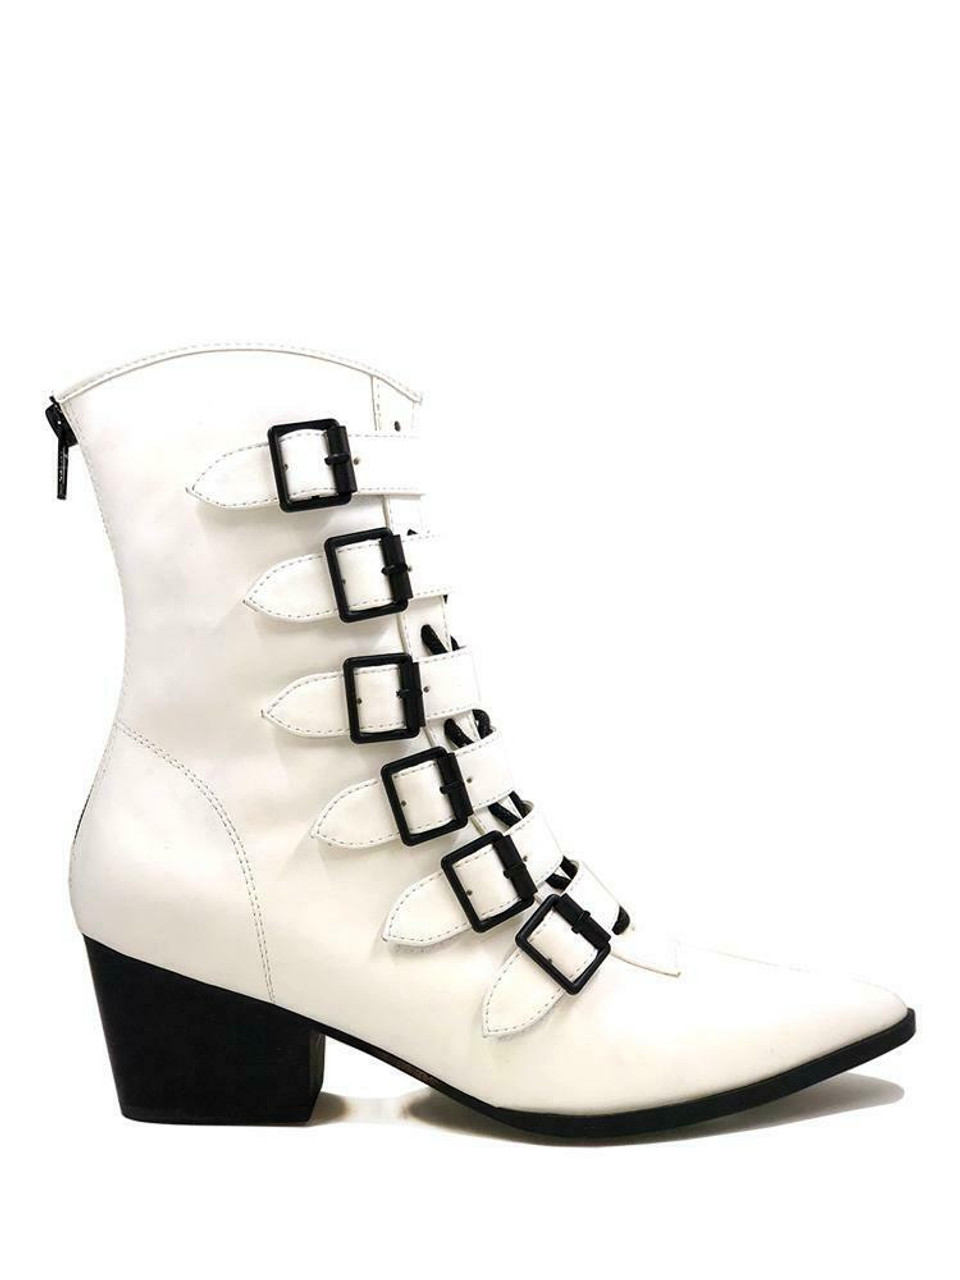 YRU Strange Cvlt Cult Coven Witch Buckles Gothic Punk White Heels Ankle Boots